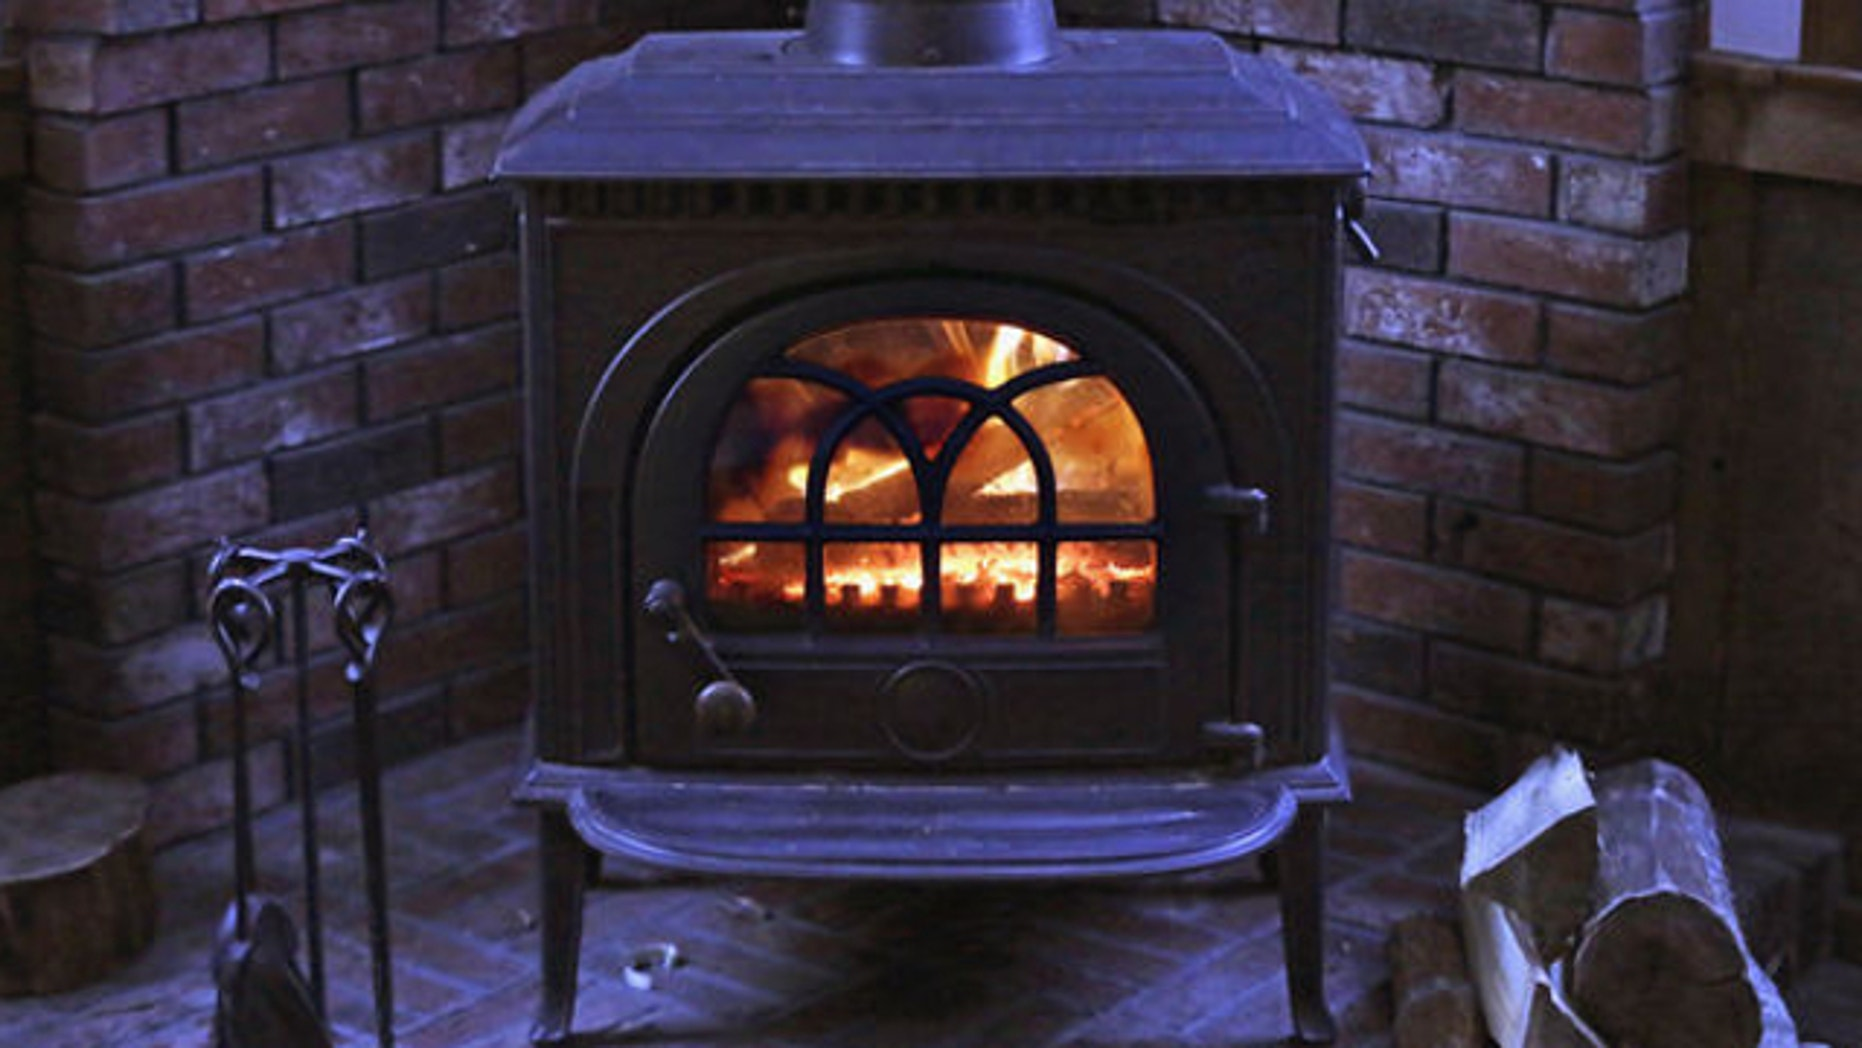 FILE: March 8, 2014: A wood stove heats a home in Freeport, Maine.